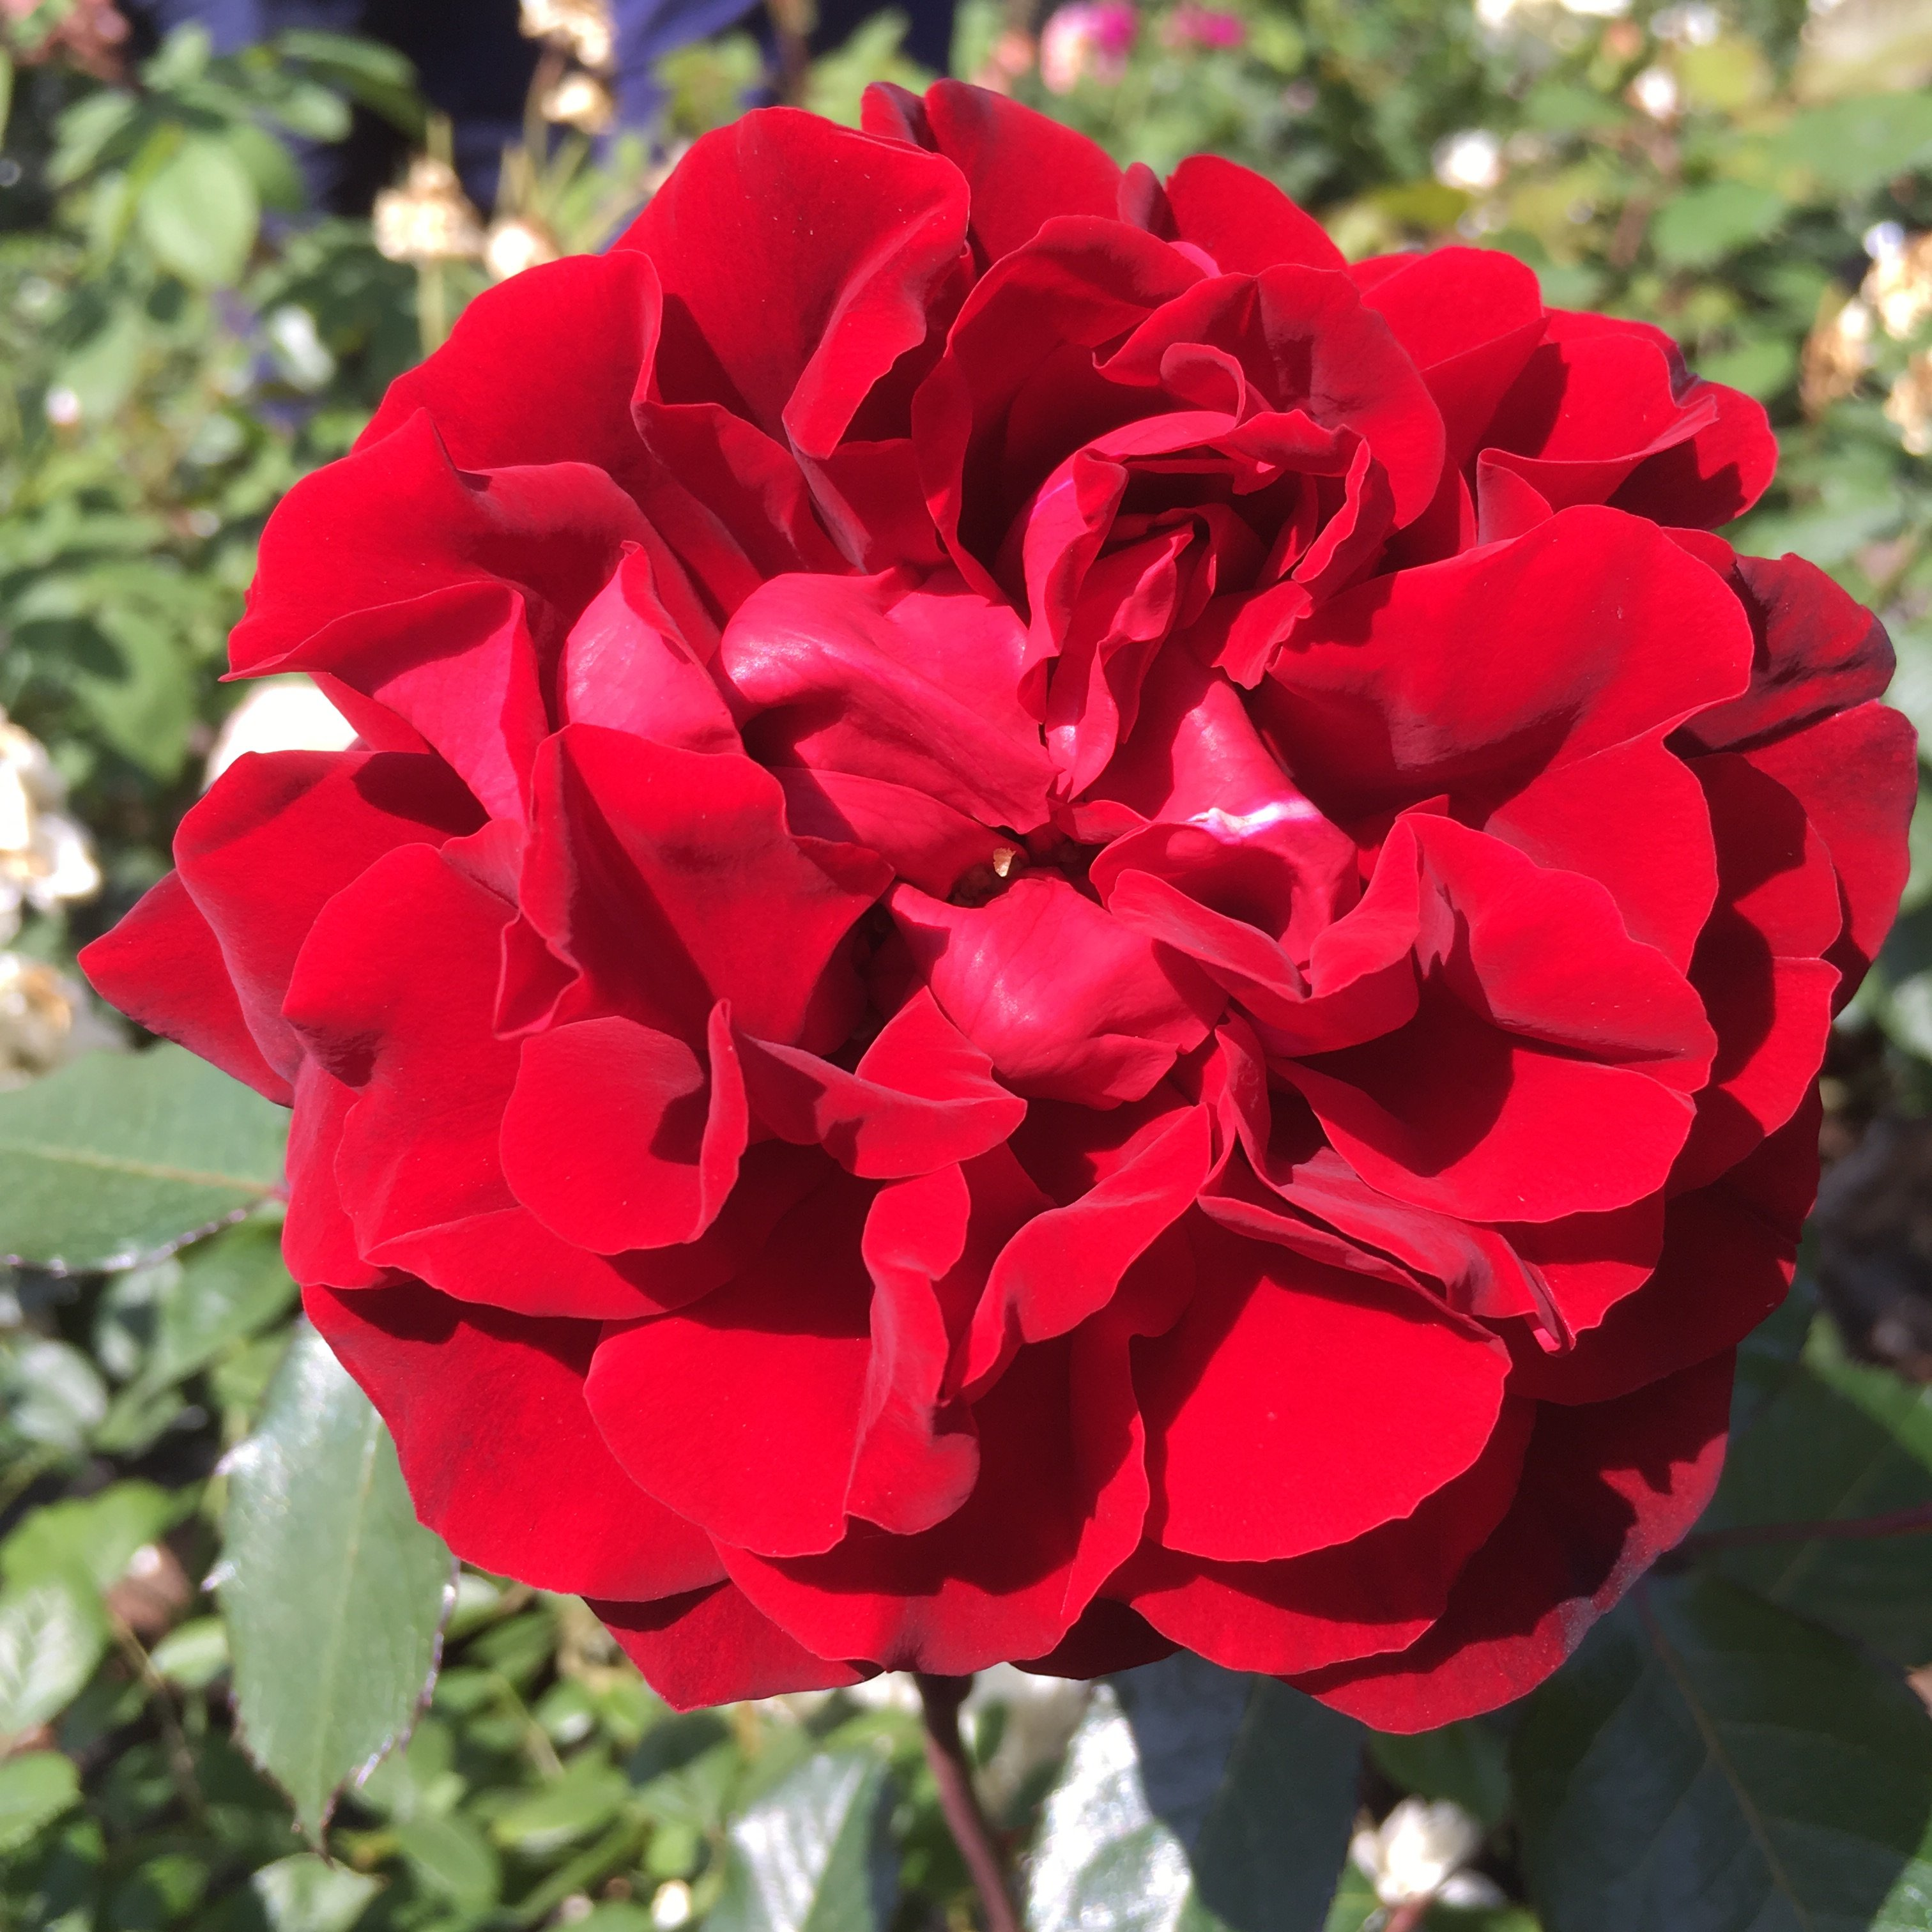 One in a Million / Trish - Red Renaissance Rose